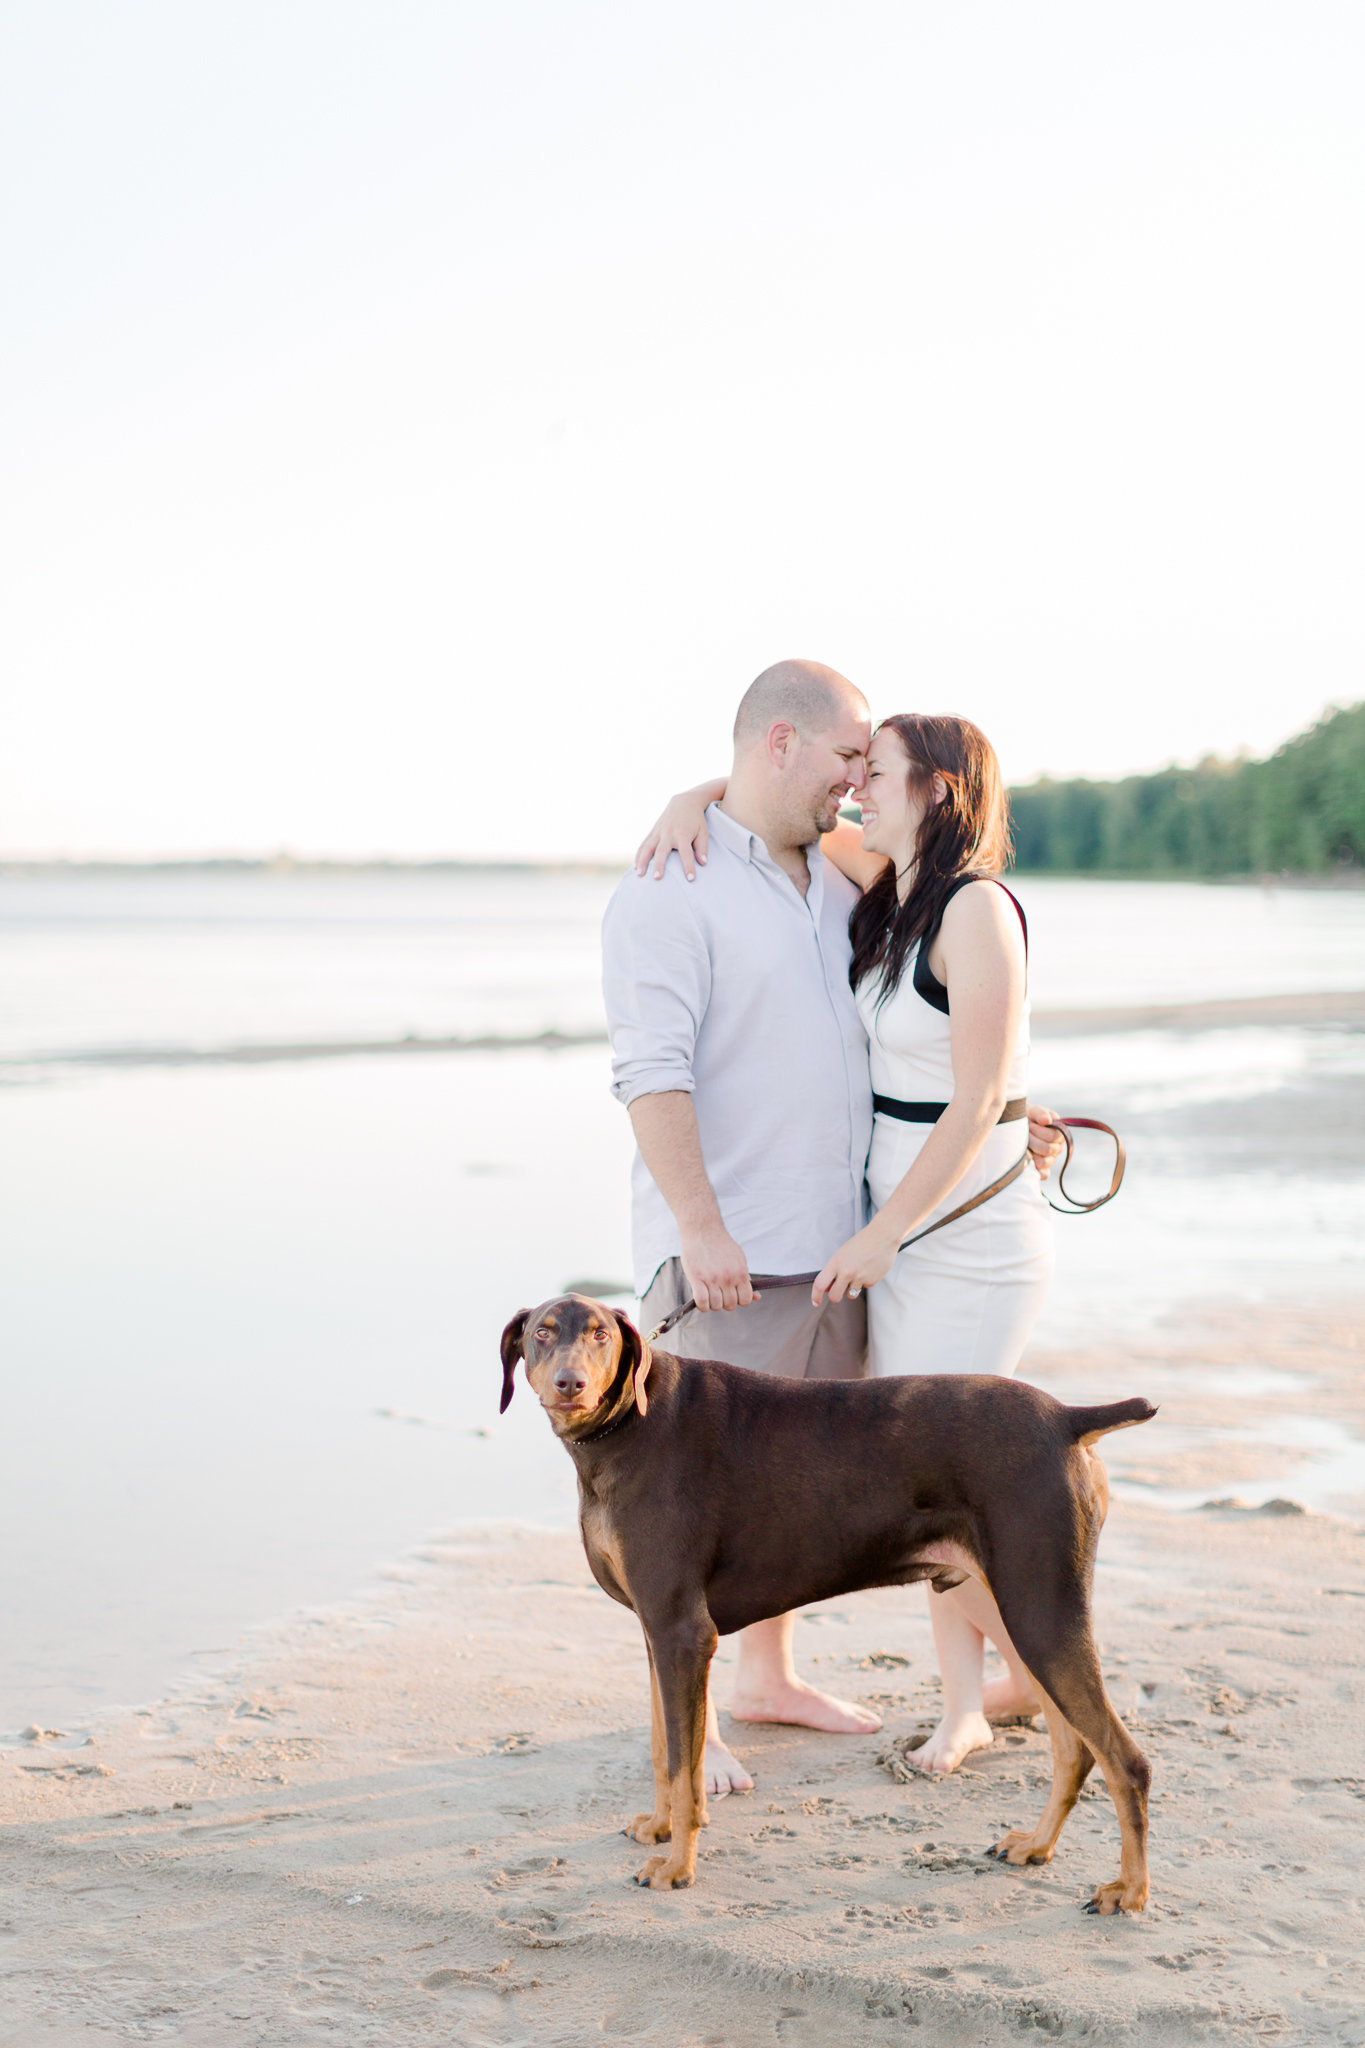 photographe-fiancailles-montreal-parc-national-oka-lisa-renault-photographie-beach-engagement-session-27